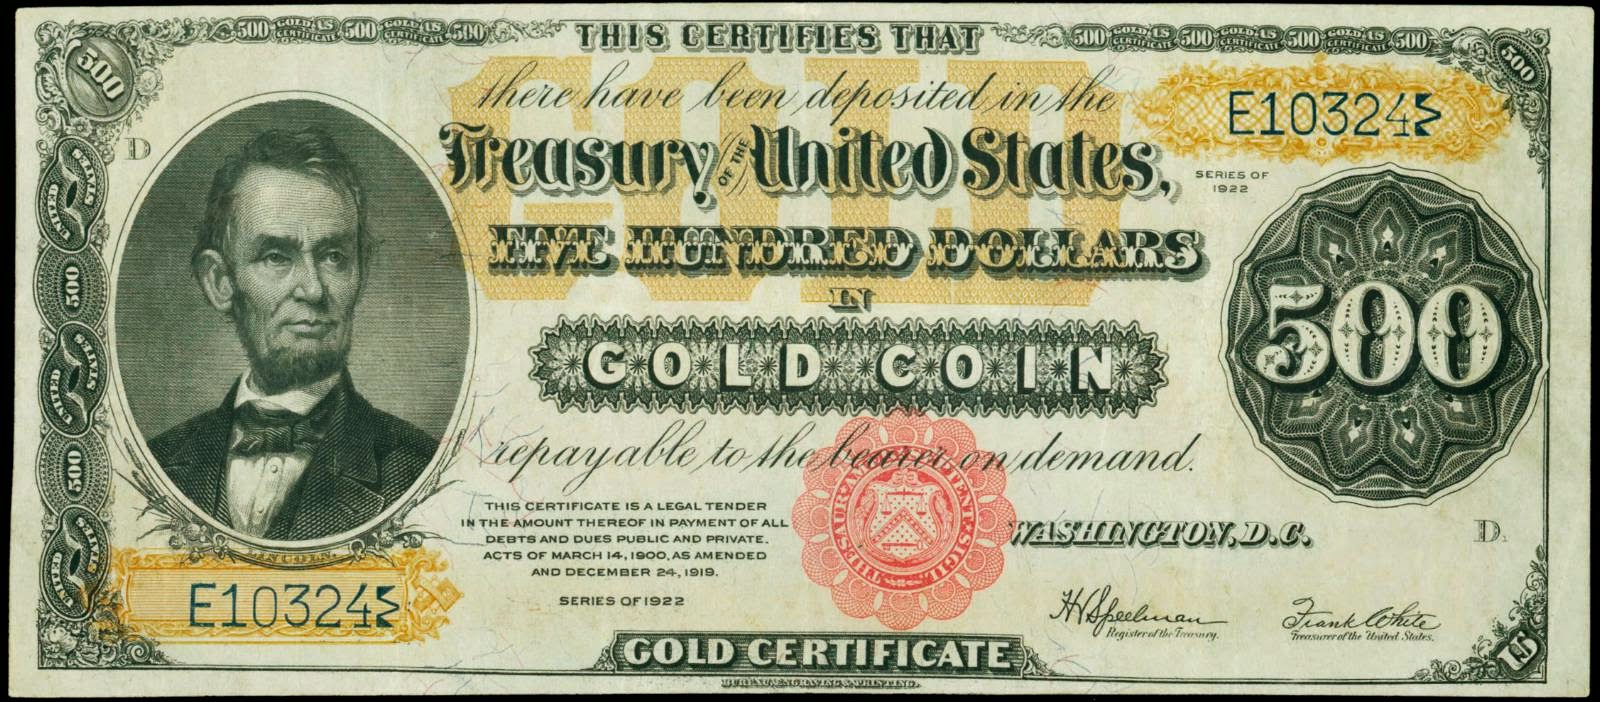 500 Dollar bill Gold Certificate Series 1922 Abraham Lincoln